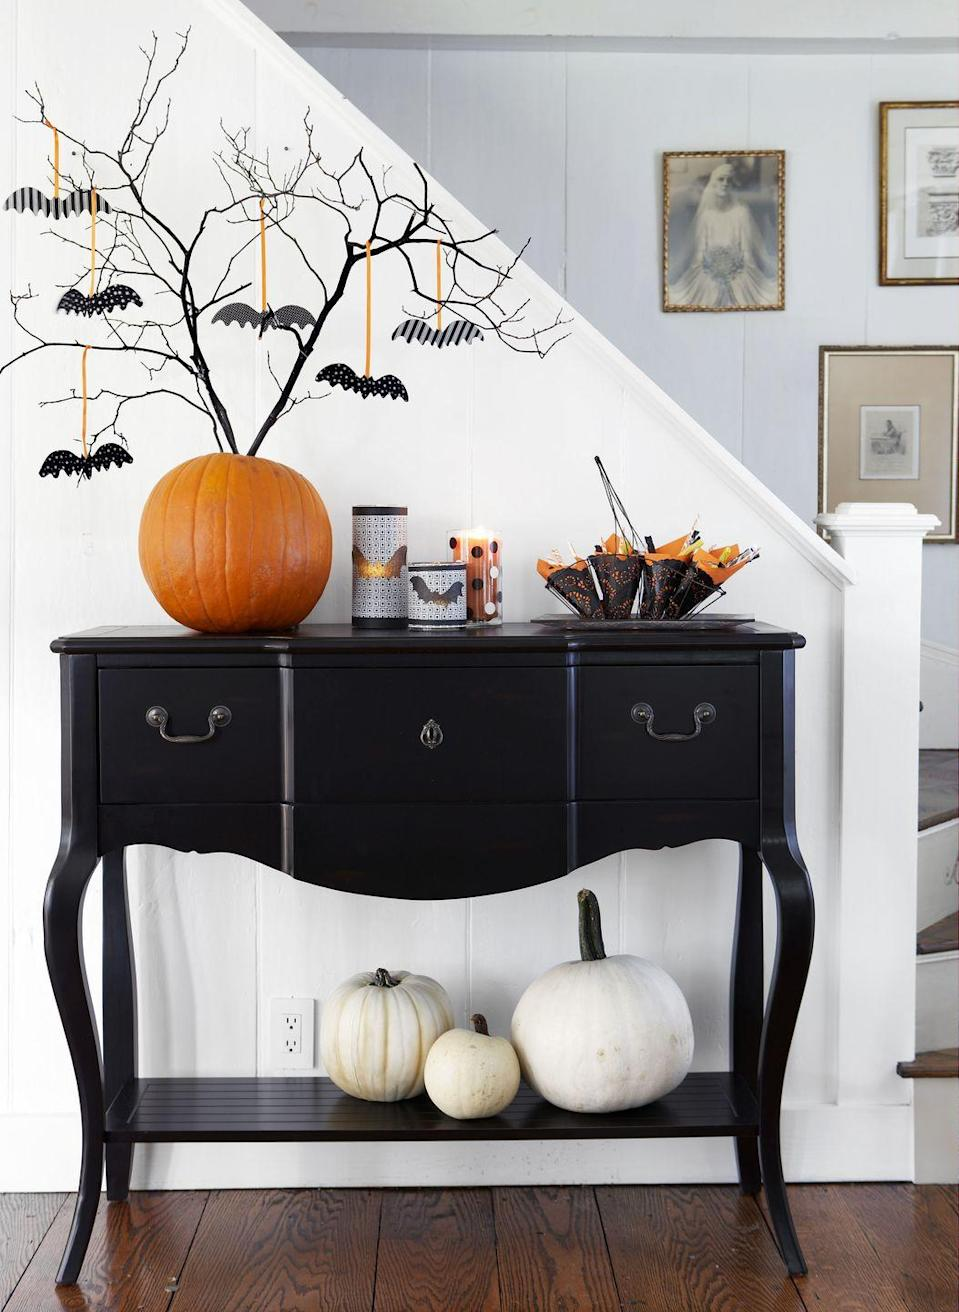 "<p>Perk up the foyer with a bevy of fluttering bats. Simply stick backyard branches into a plain pumpkin and hang a few spooky ornaments. </p><p><em><a href=""https://www.goodhousekeeping.com/holidays/halloween-ideas/g421/halloween-decorating-ideas-1007/"" rel=""nofollow noopener"" target=""_blank"" data-ylk=""slk:Get the tutorial »"" class=""link rapid-noclick-resp"">Get the tutorial »</a></em></p>"